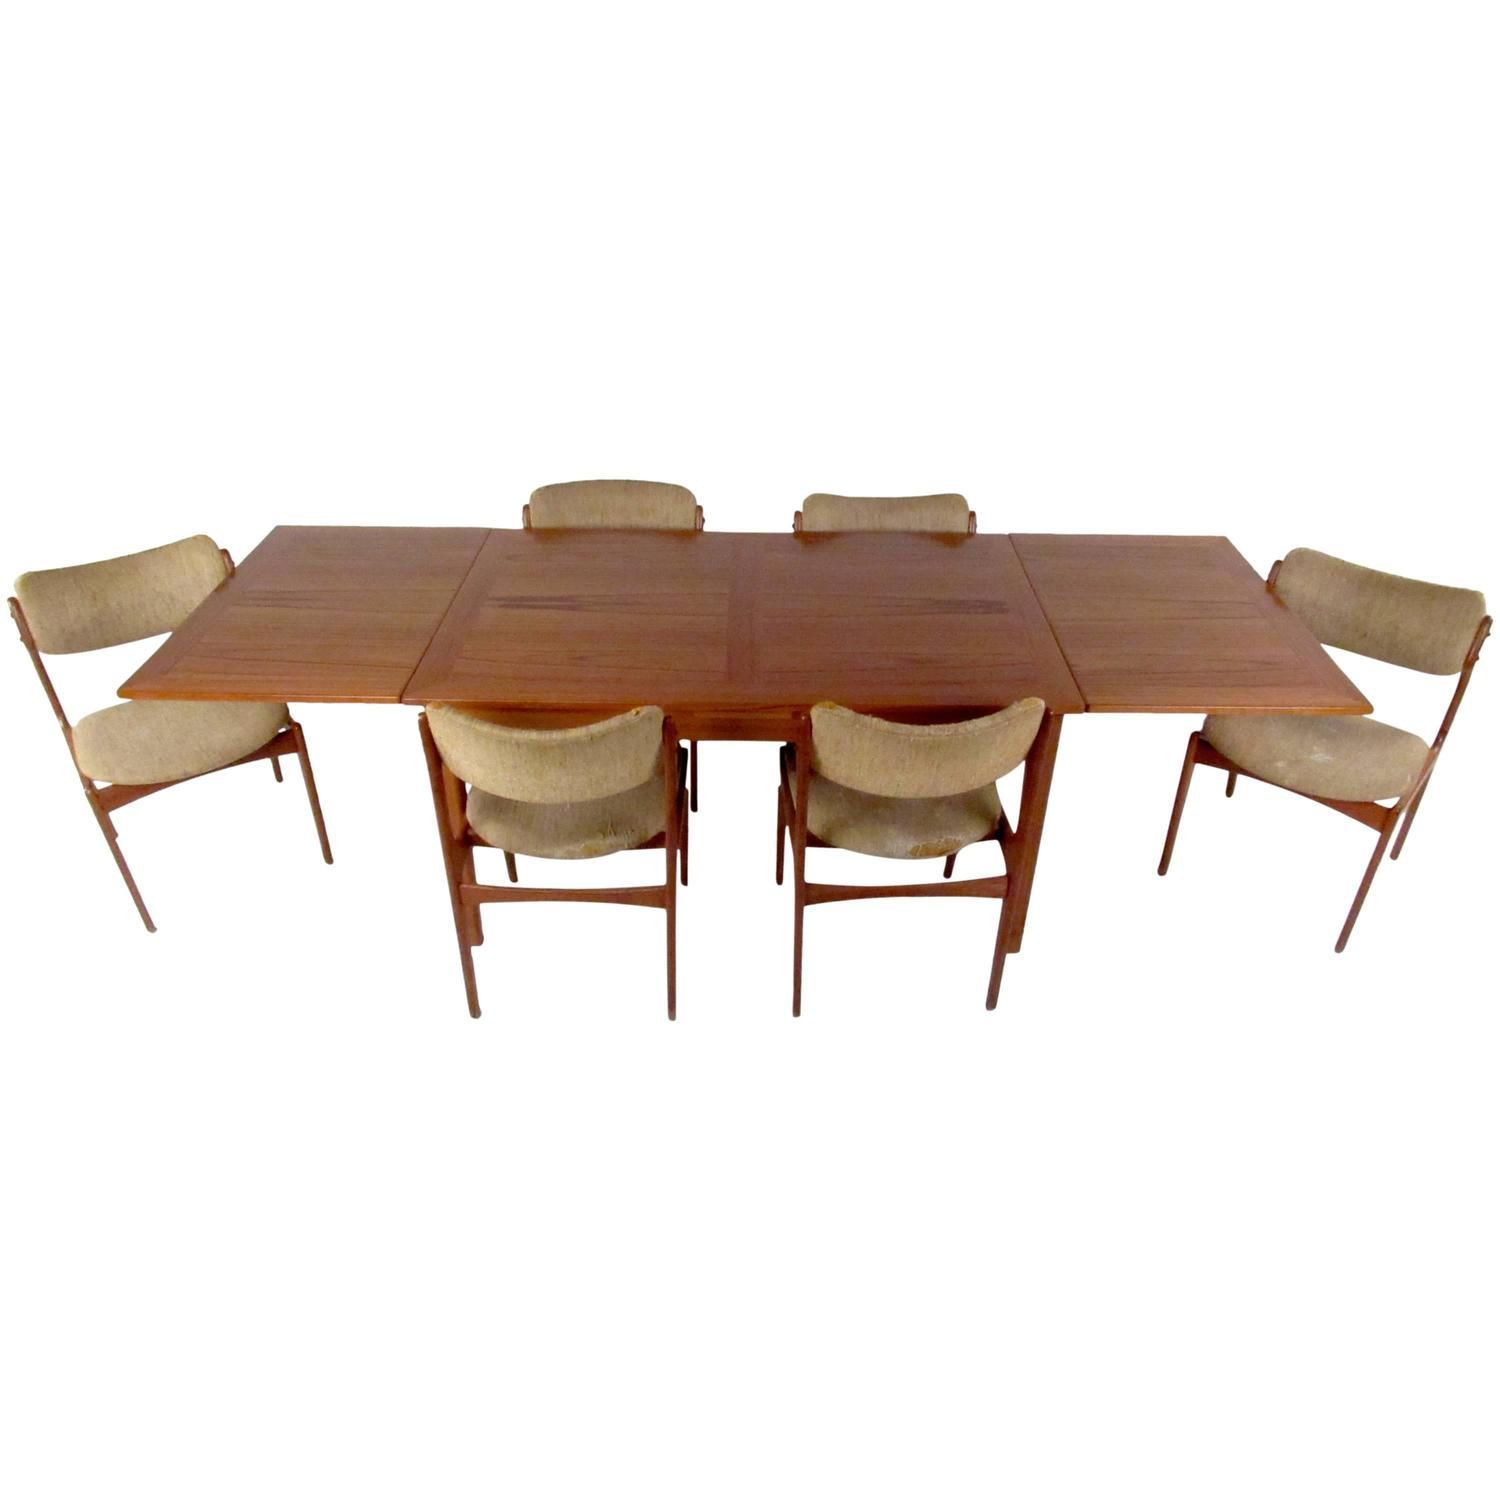 O.D. Møbler Denmark Furniture - 10 For Sale at 1stdibs